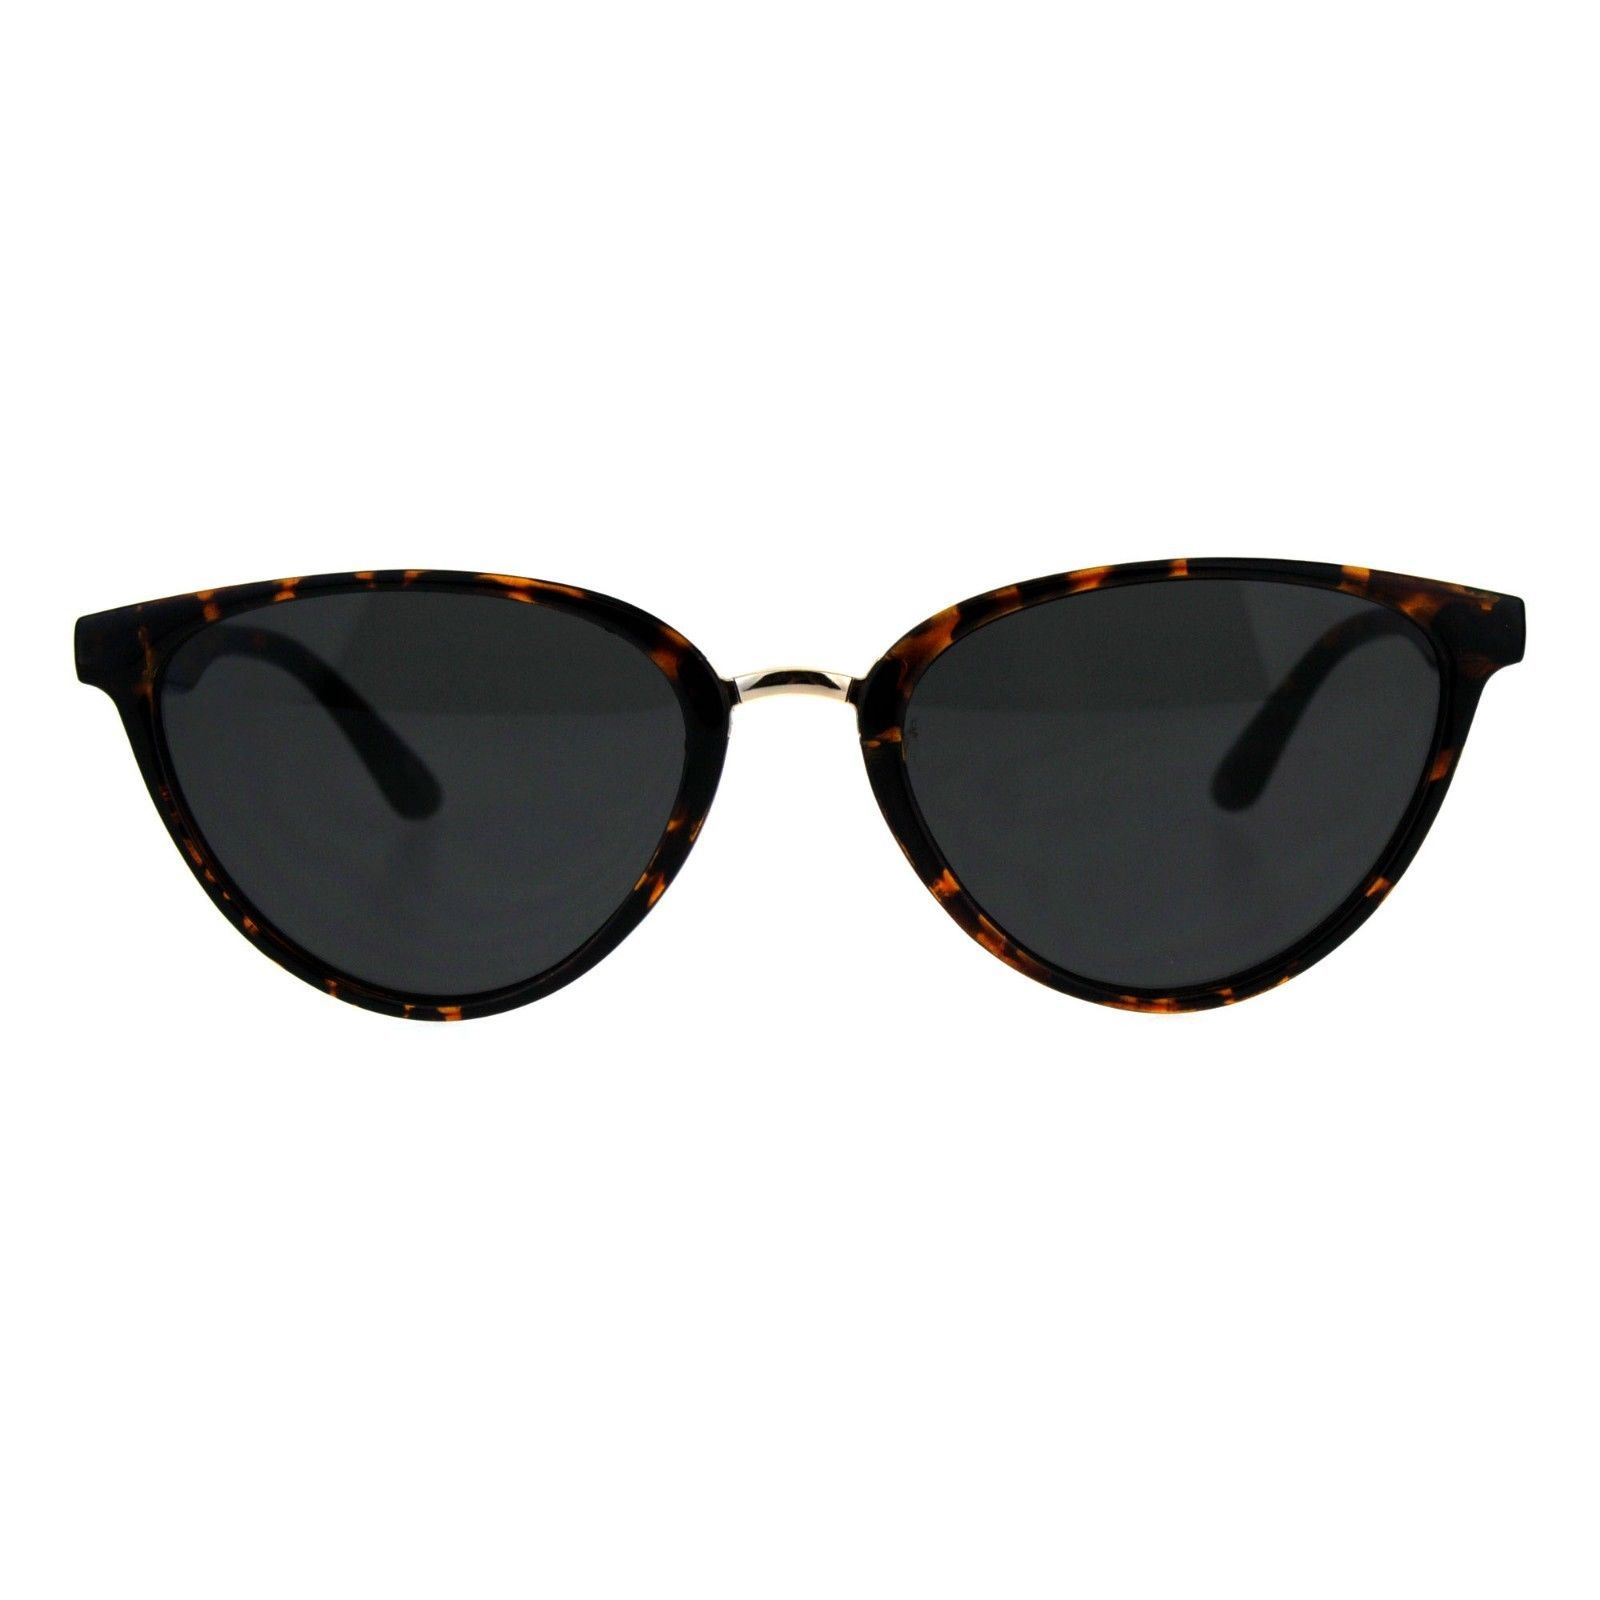 Womens Sunglasses Designer Fashion Triangular Oval Frame UV 400